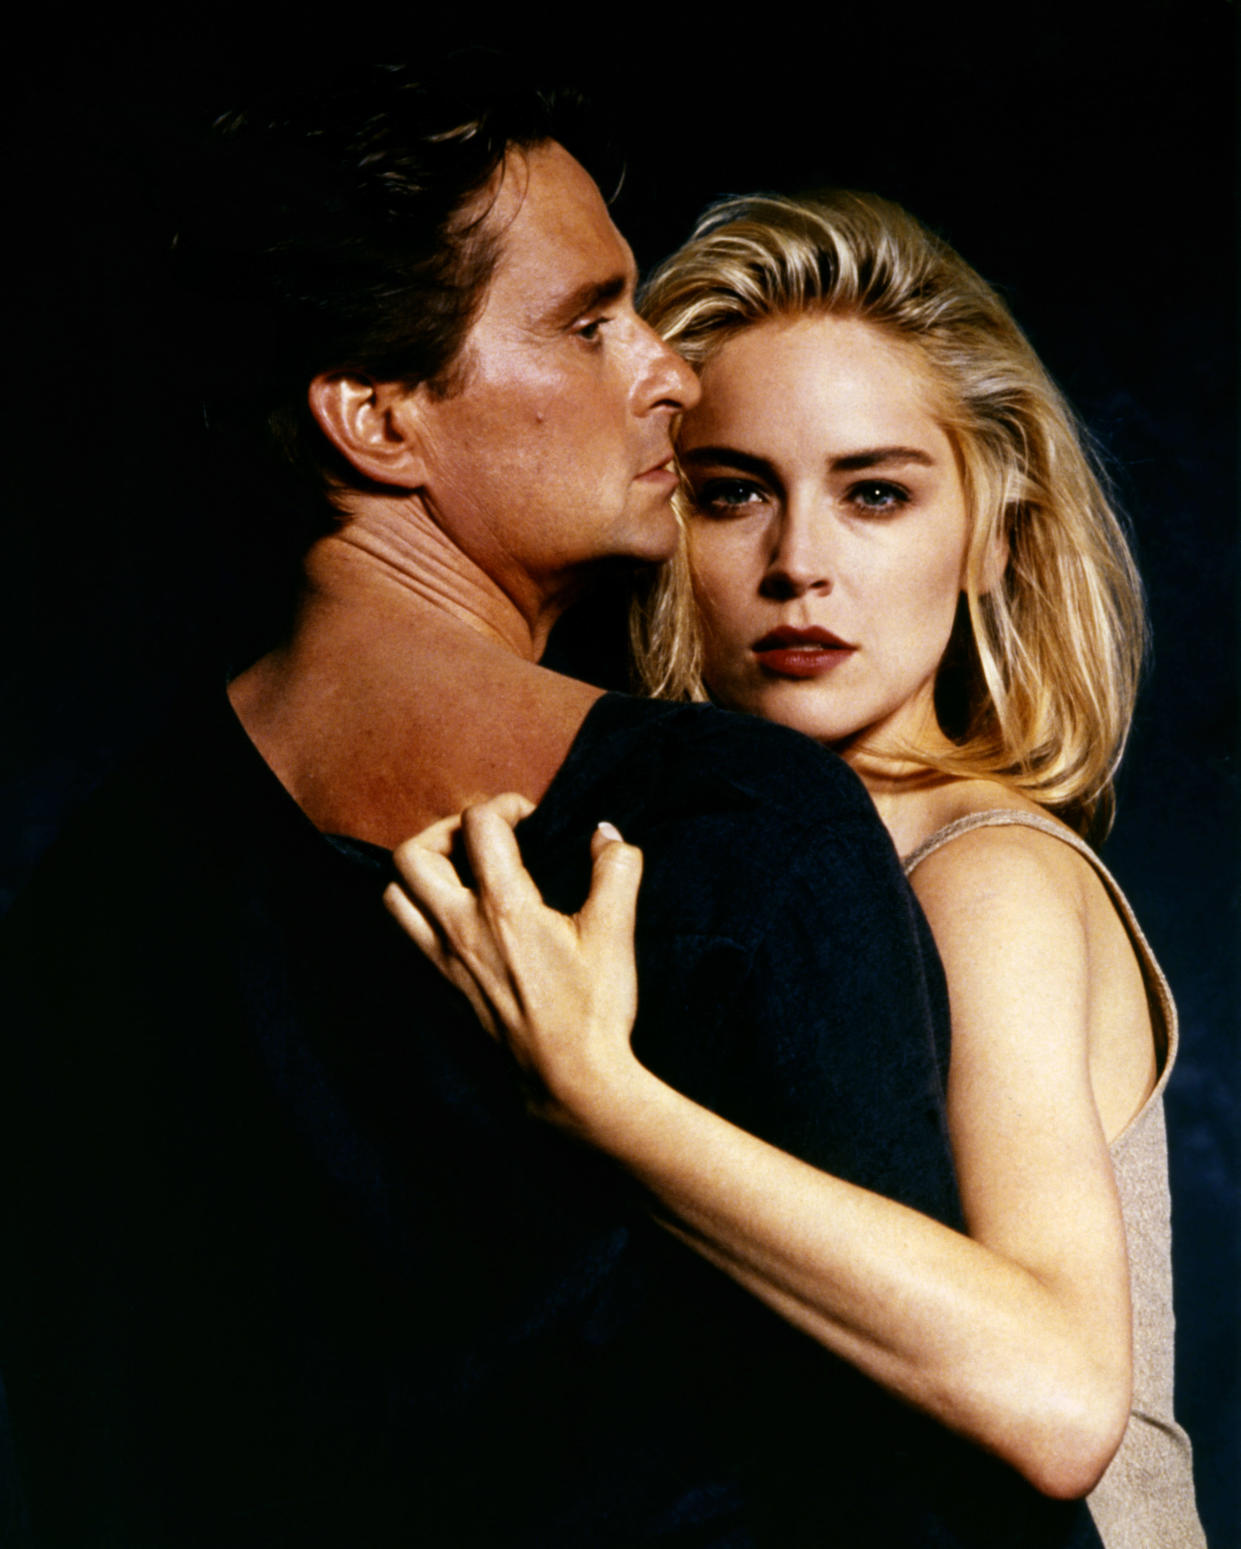 American actors Michael Douglas and Sharon Stone on the set of Basic Instinct directed by Dutch Paul Verhoeven. (Photo by Sunset Boulevard/Corbis via Getty Images)